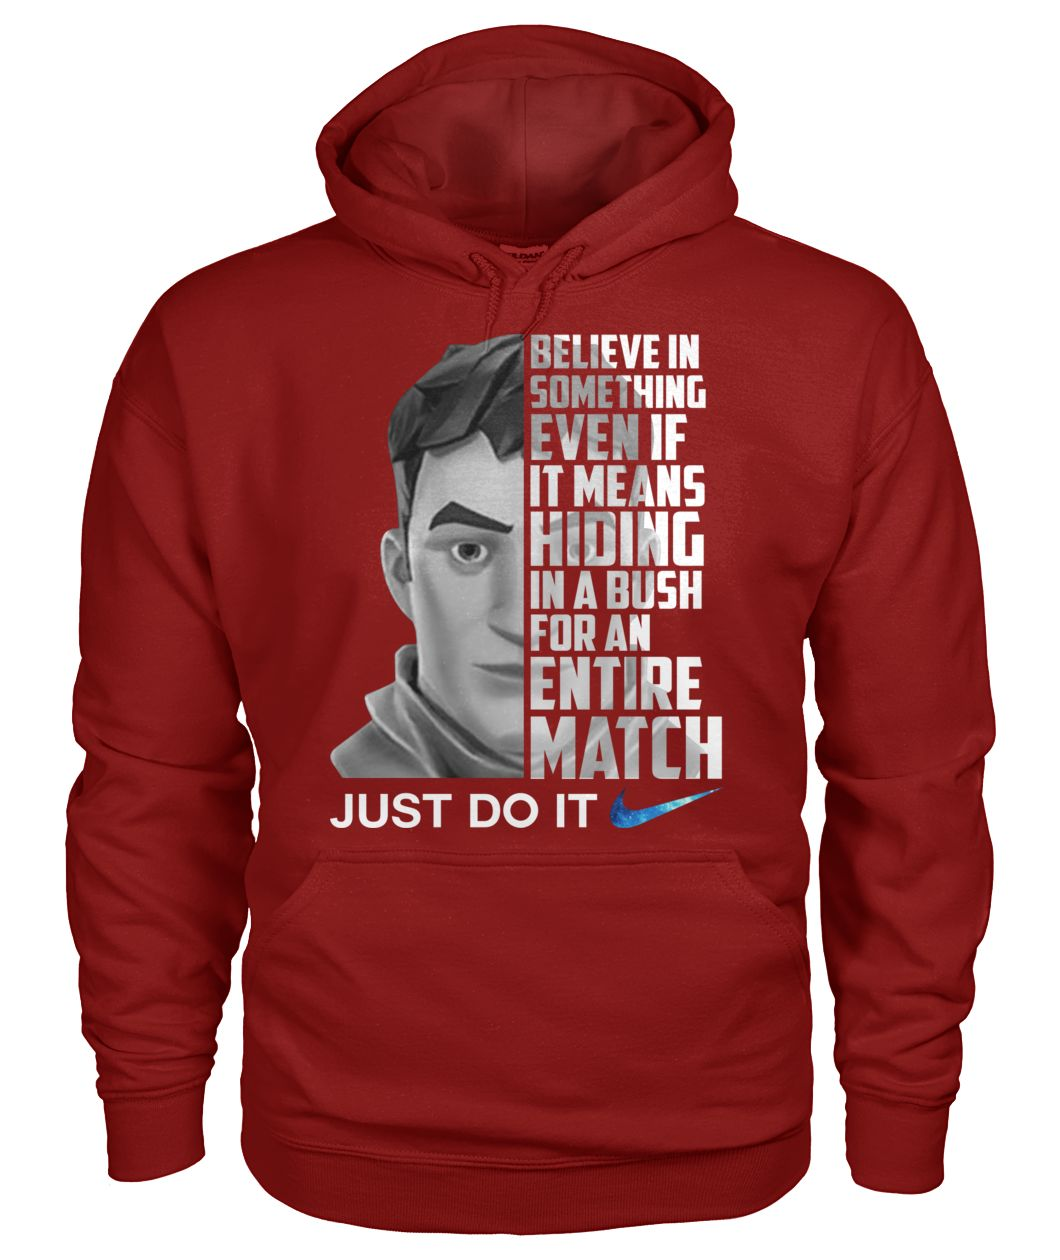 Fortnite believe in something even if it means hiding in a bush gildan hoodie